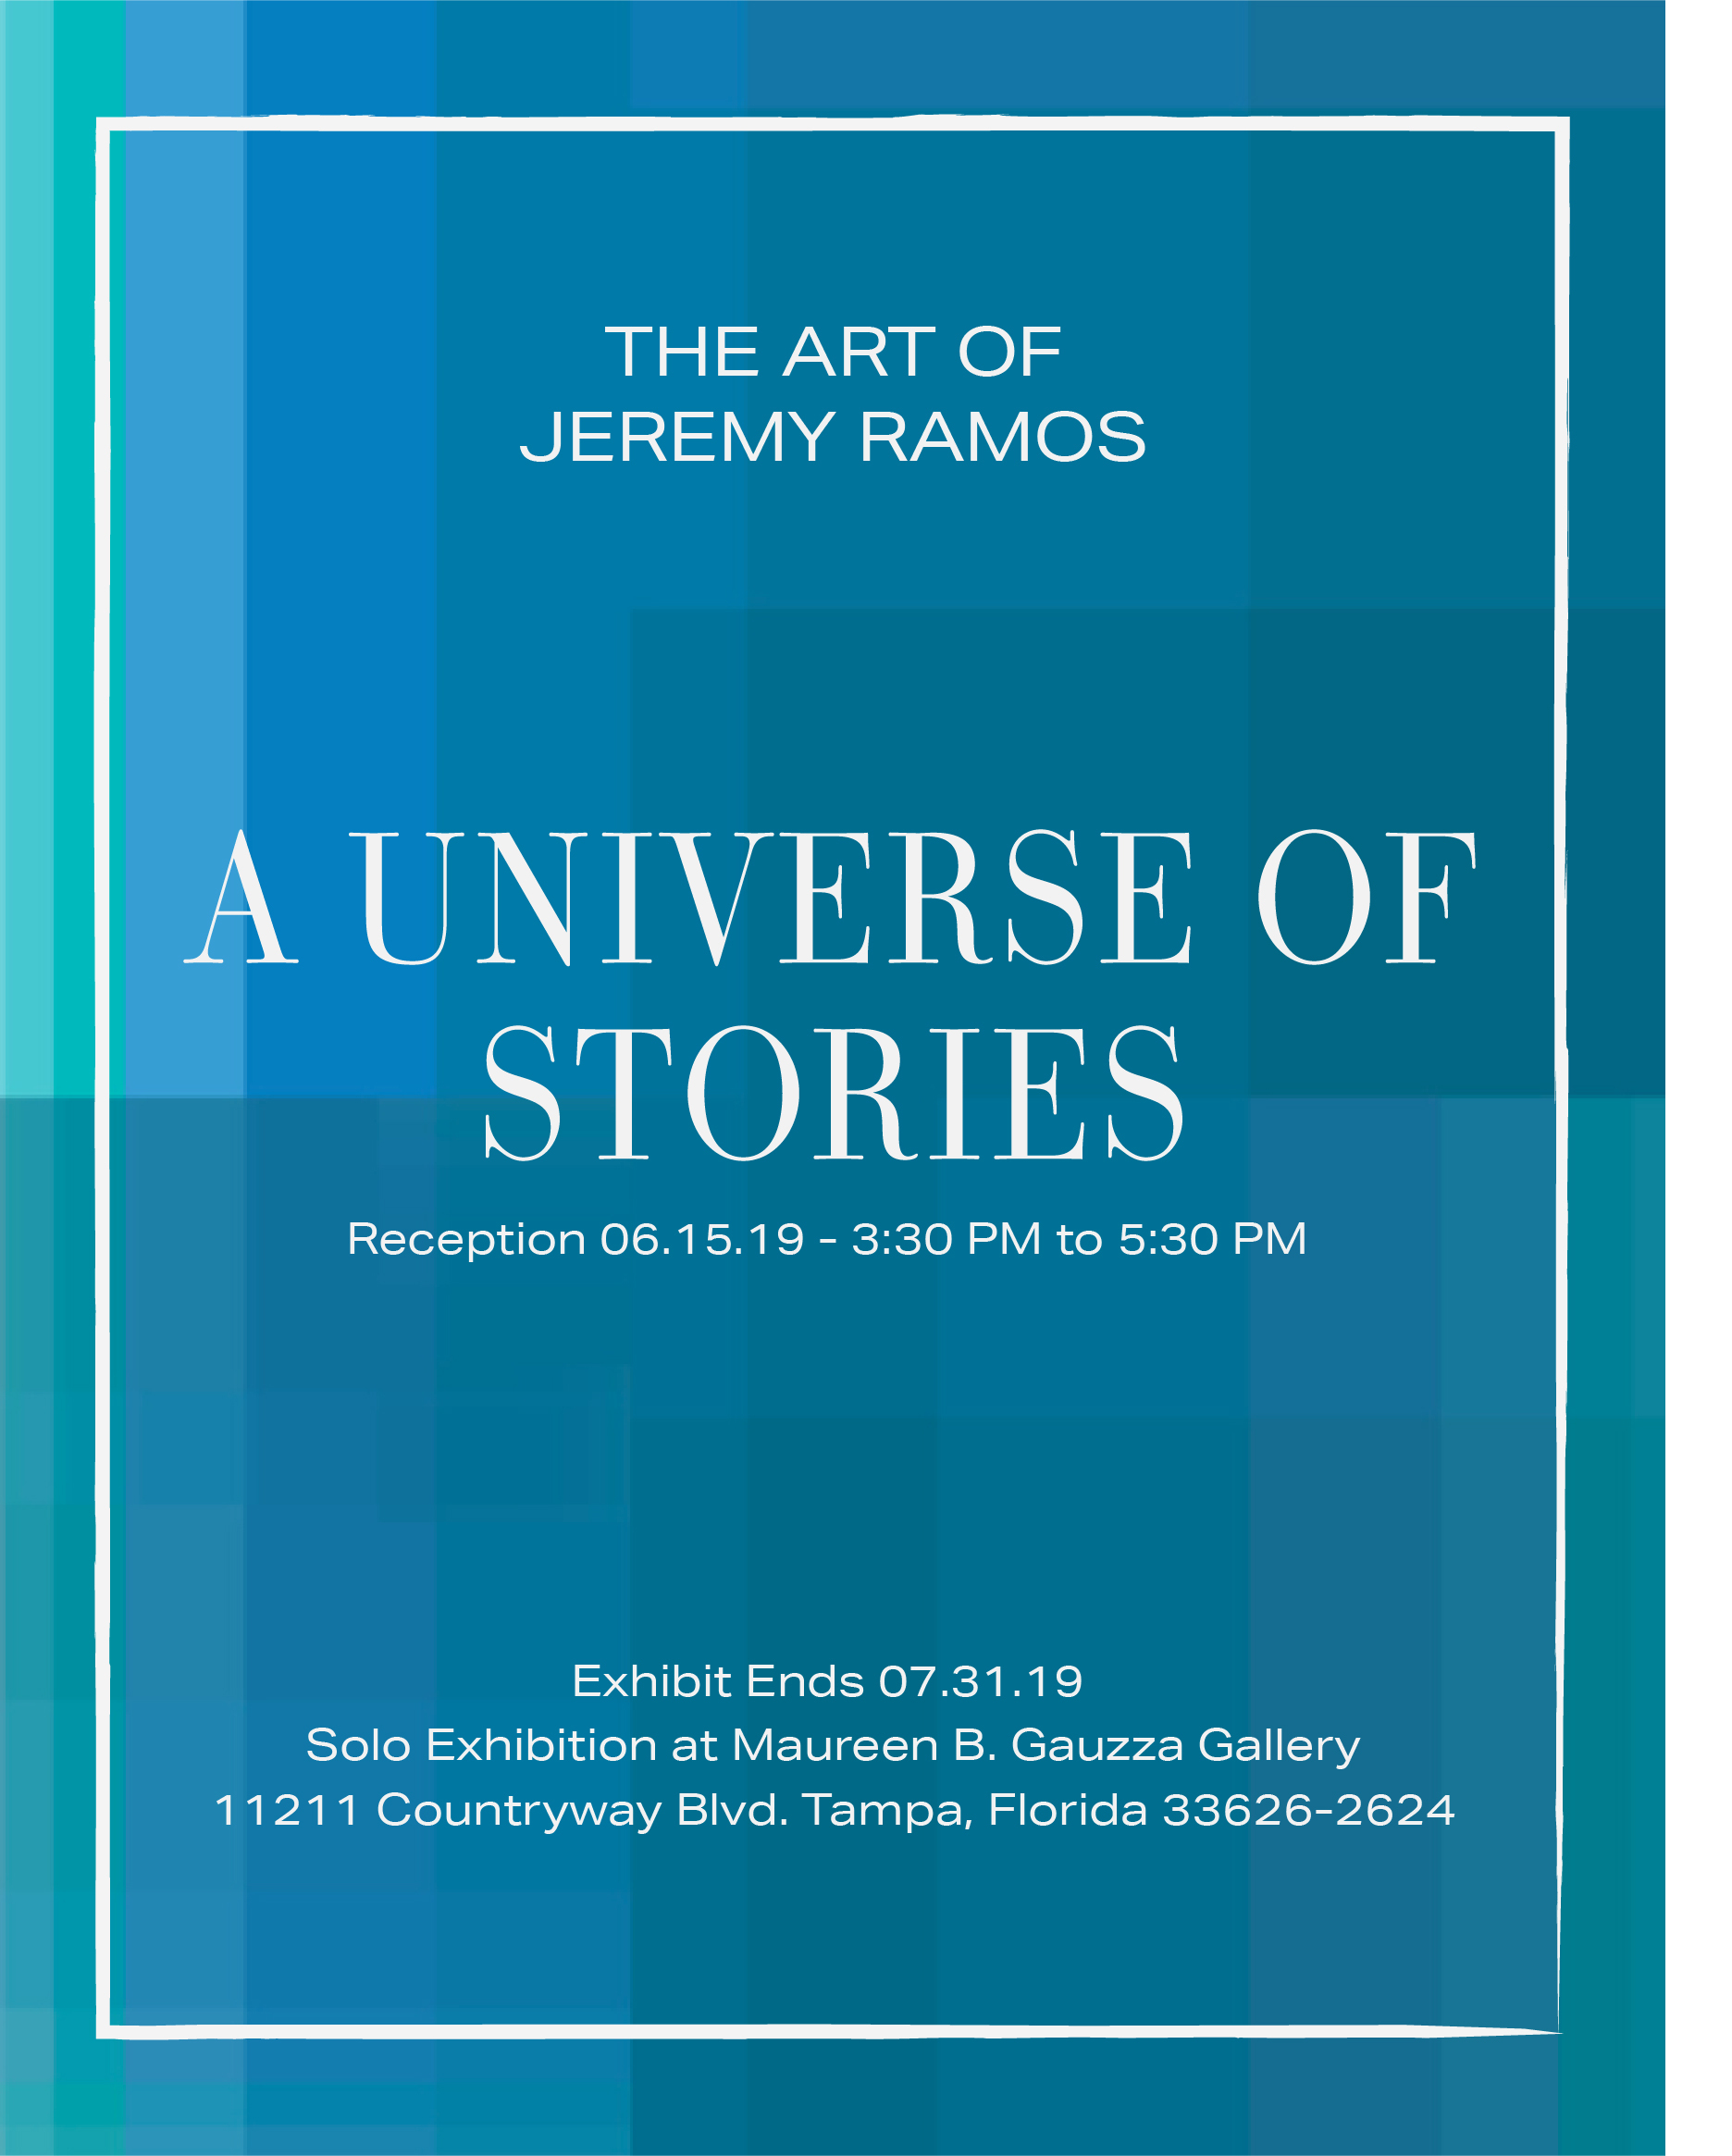 Solo Show: A UNIVERSE OF STORIES